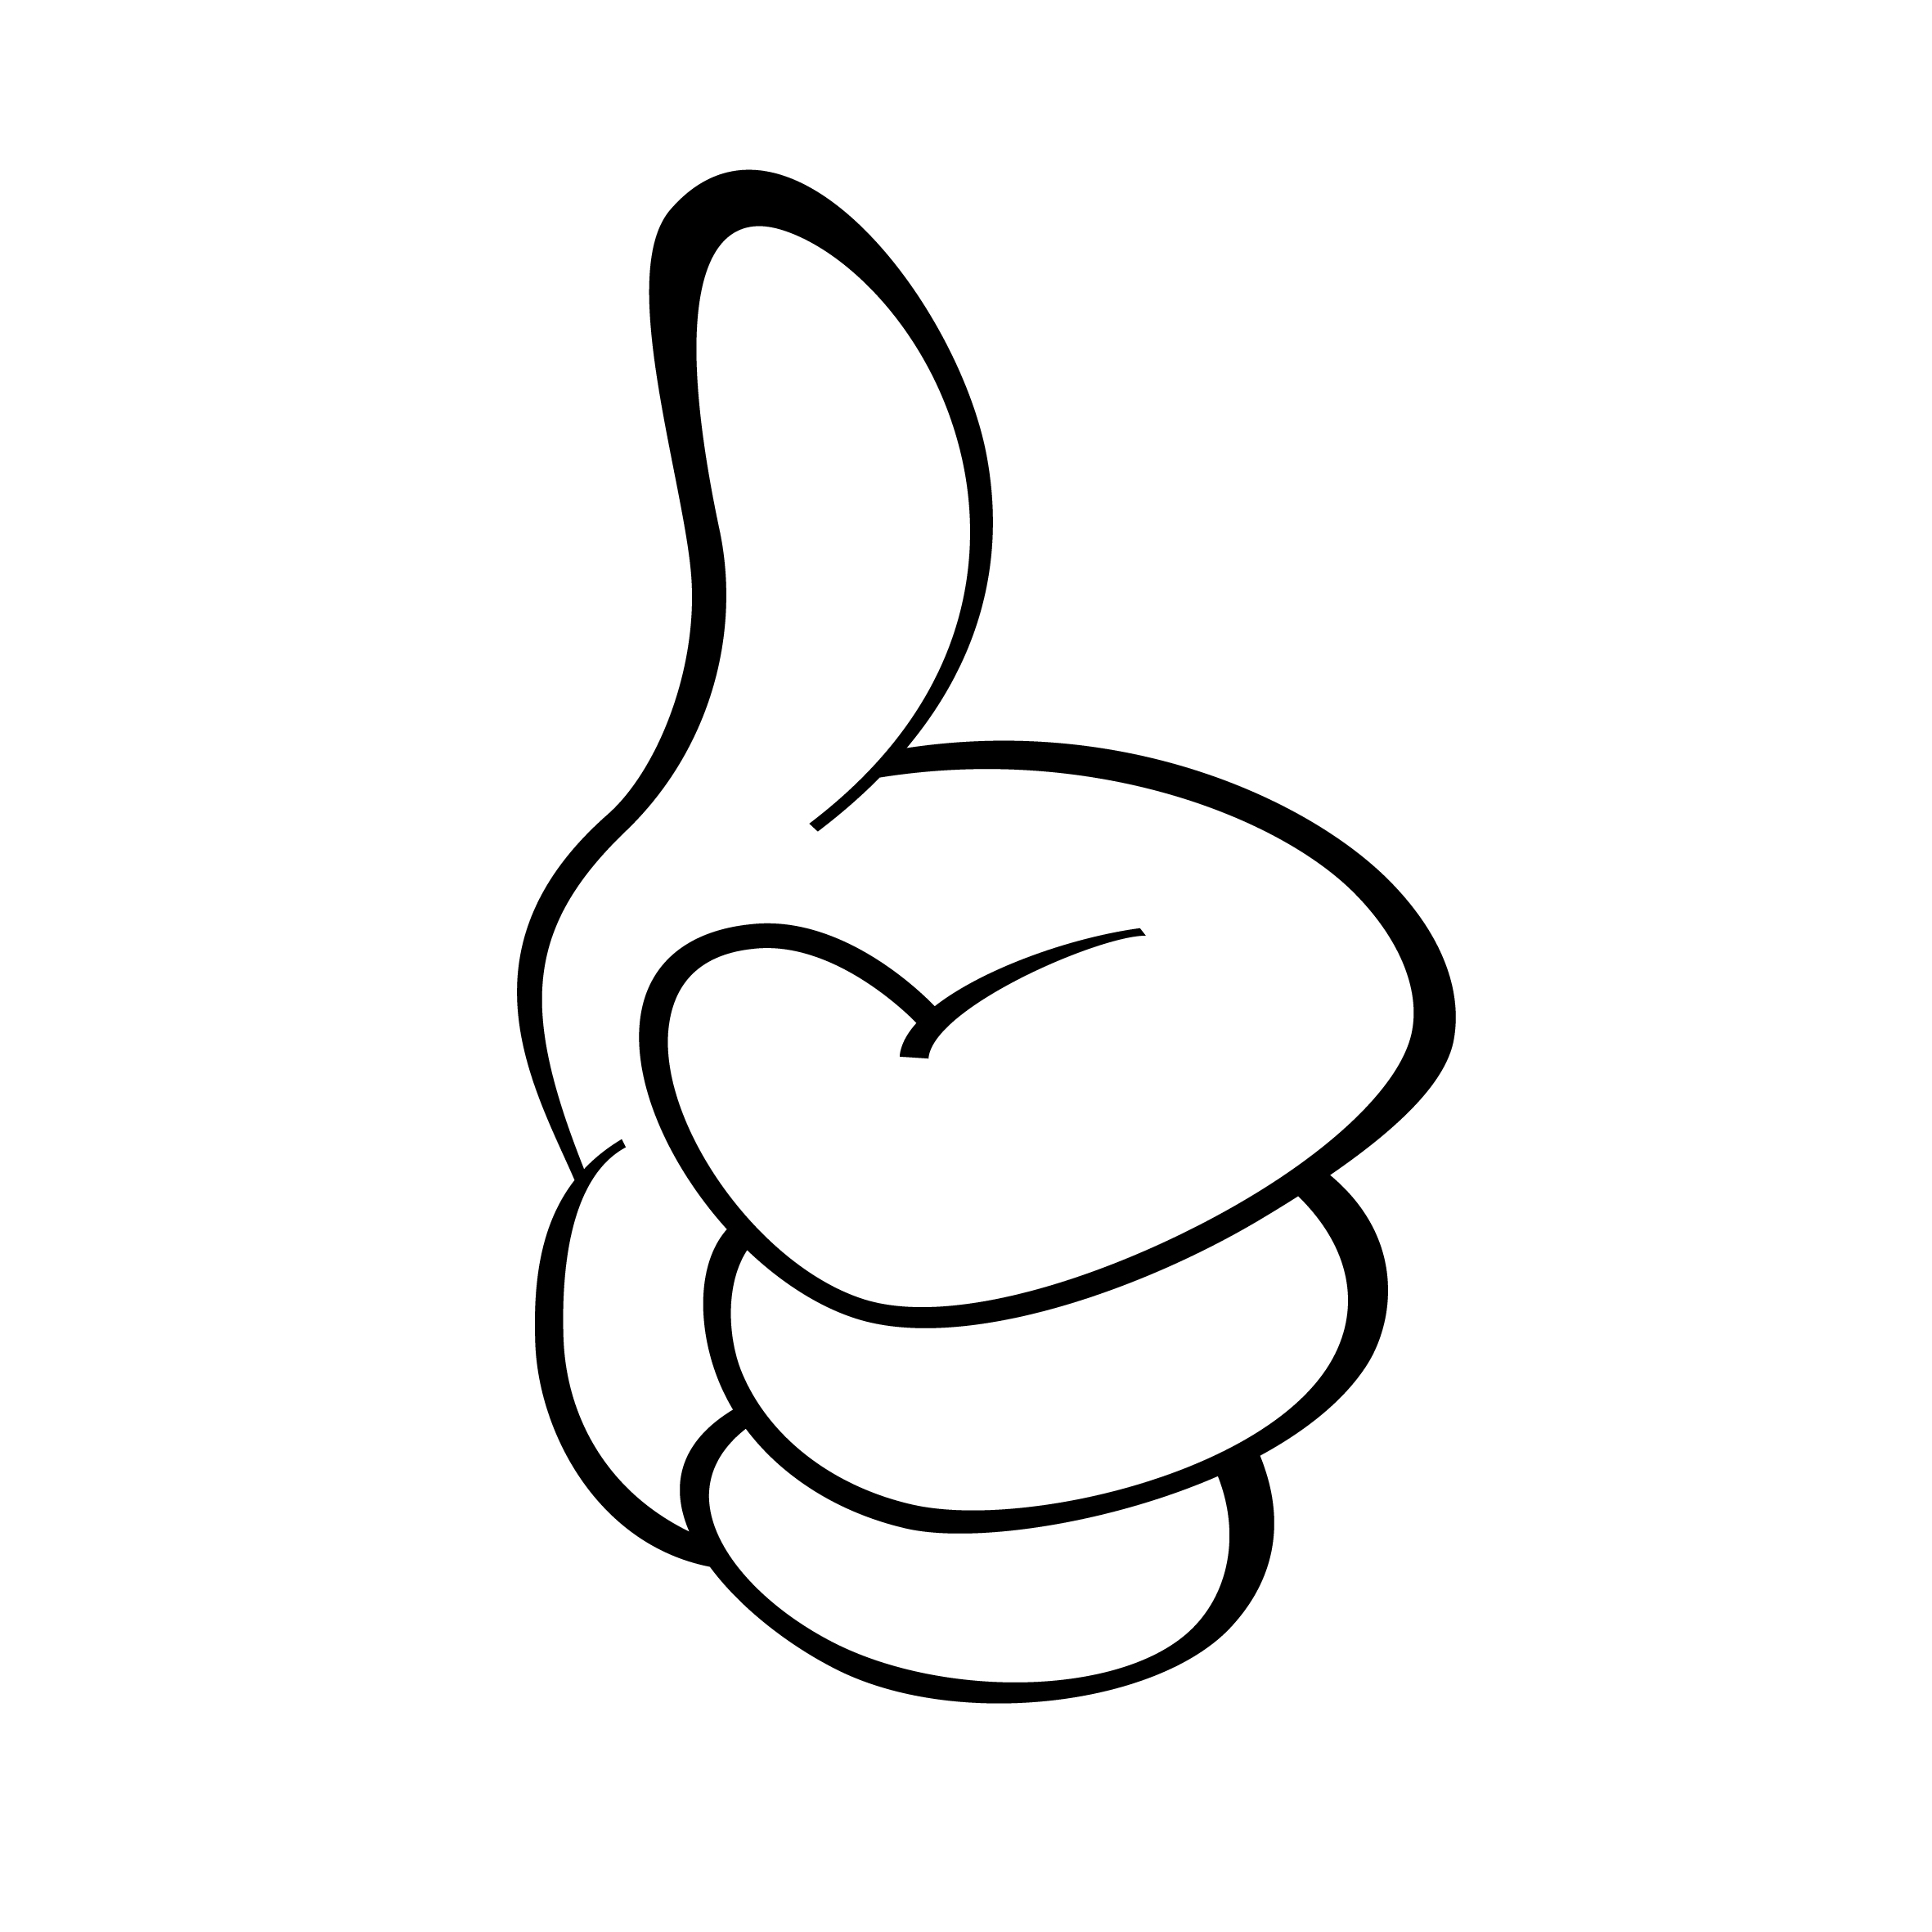 This Guy Two Thumbs Up Clipart - Clipart Kid transparent download